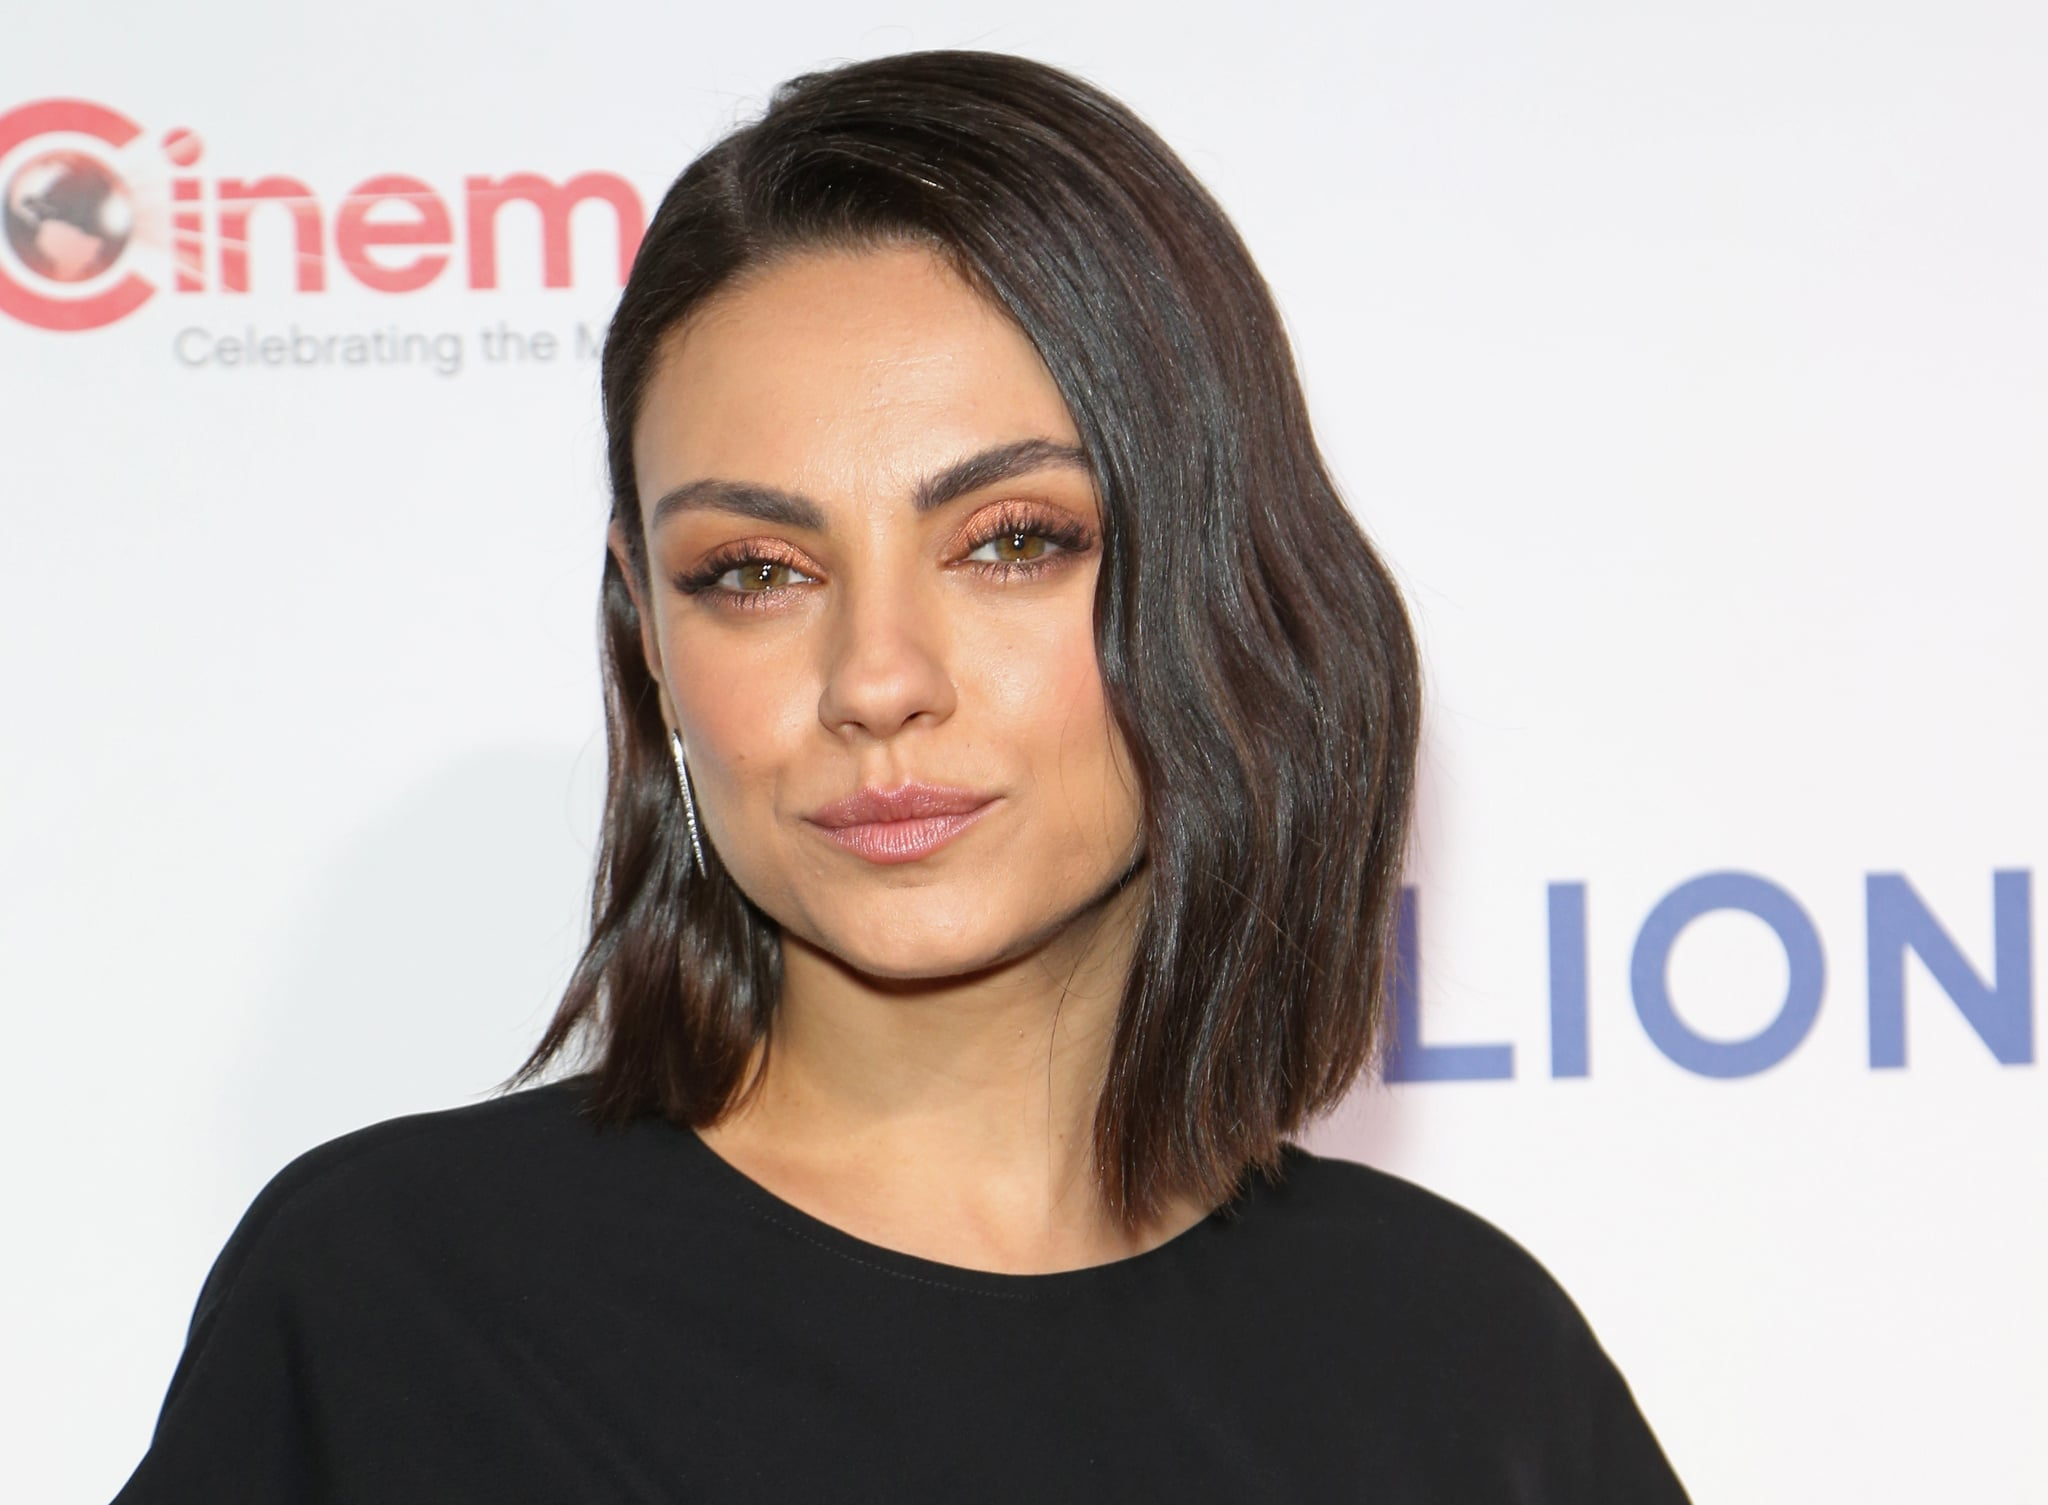 LAS VEGAS, NV - APRIL 26:  Actress Mila Kunis attends CinemaCon 2018 Lionsgate Invites You to An Exclusive Presentation Highlighting Its 2018 Summer and Beyond at The Colosseum at Caesars Palace during CinemaCon, the official convention of the National Association of Theatre Owners, on April 26, 2018 in Las Vegas, Nevada.  (Photo by Gabe Ginsberg/Getty Images)